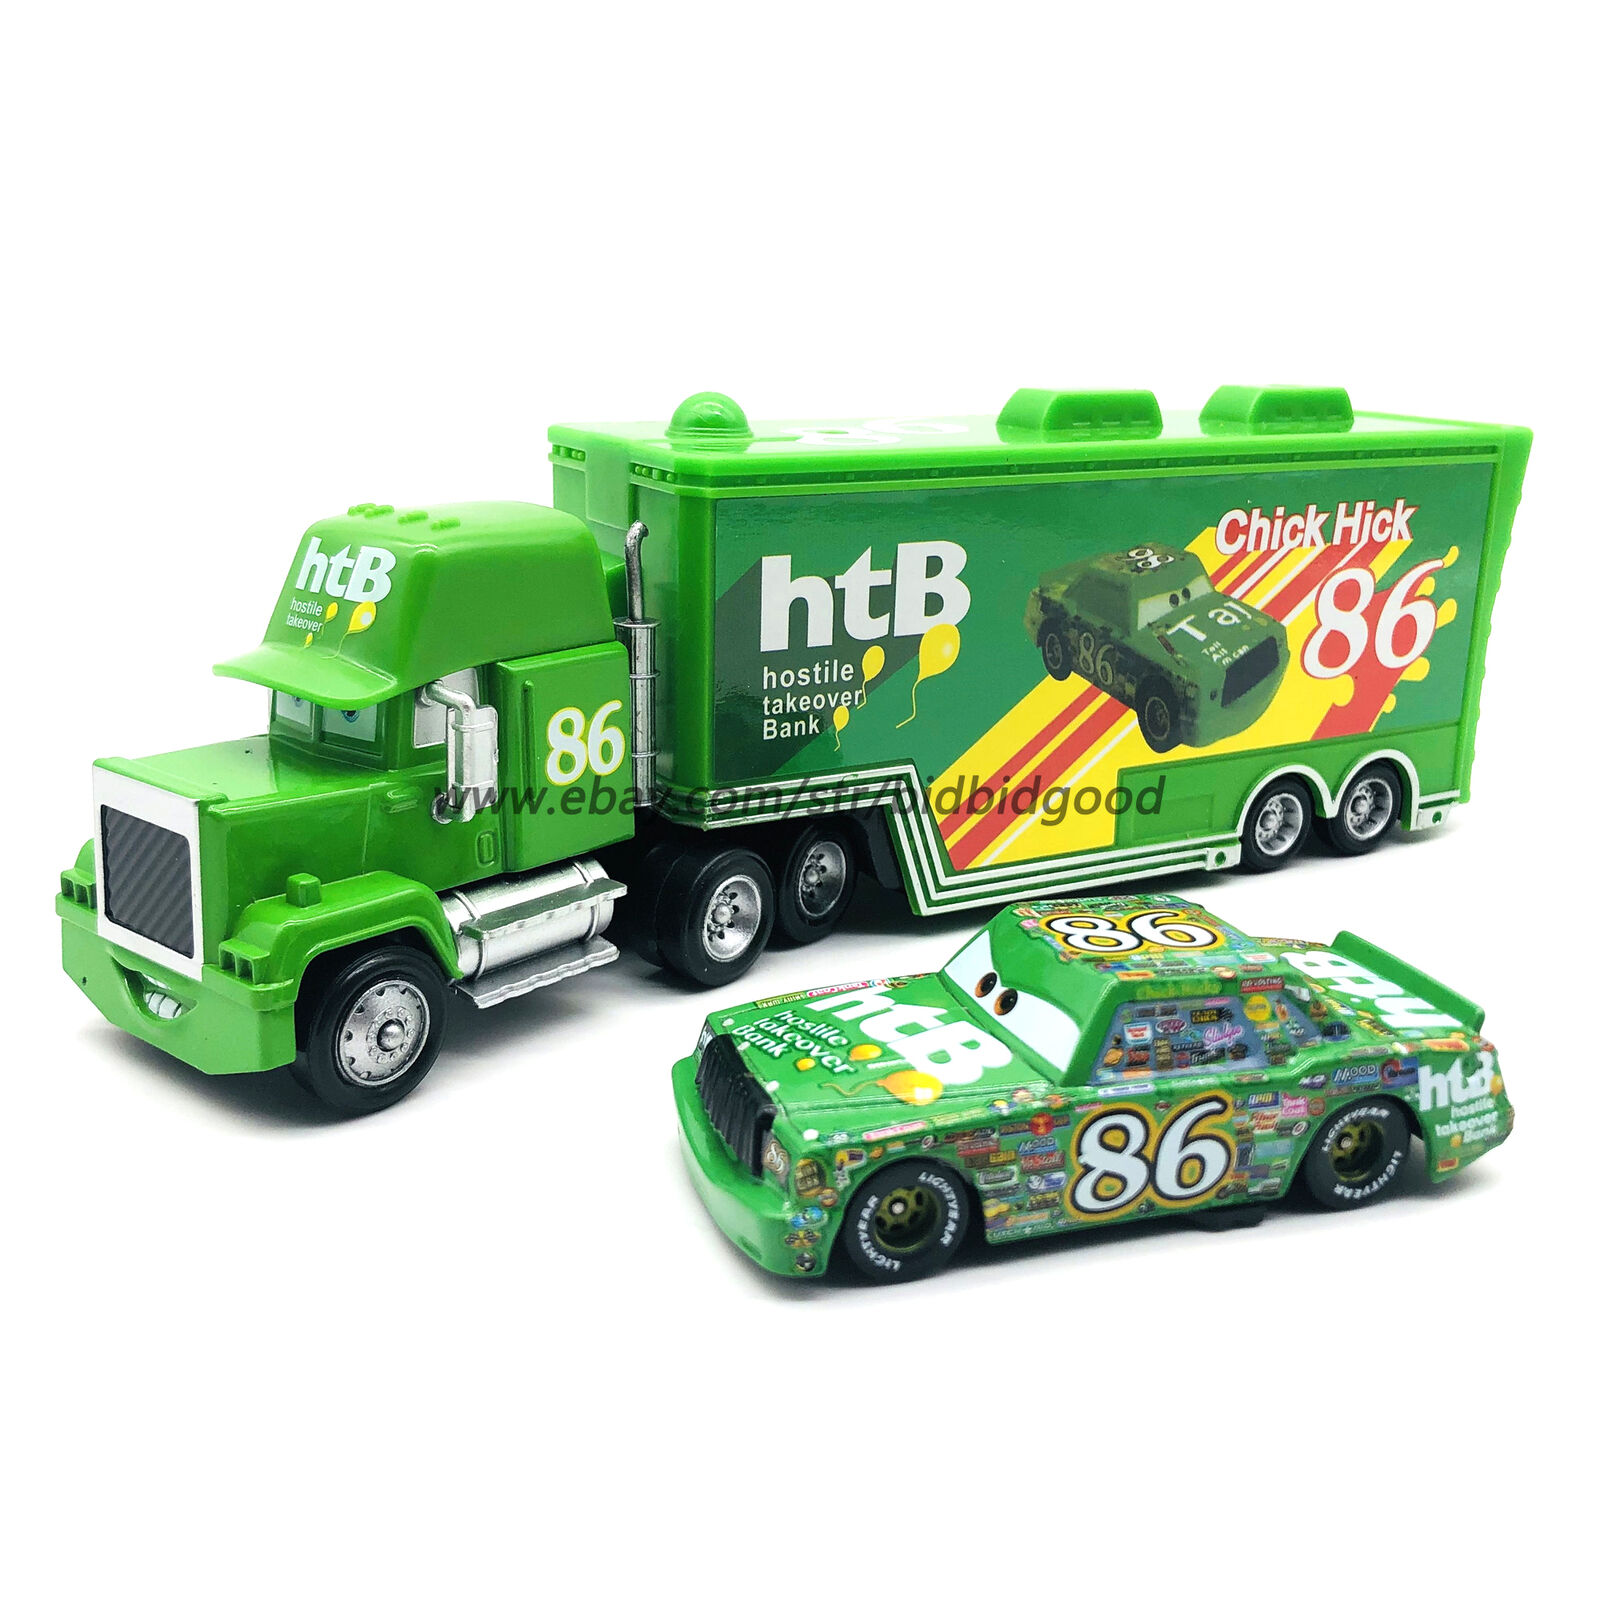 Disney Pixar Cars Chick Hicks Hauler Truck /& NO.86 Metal Car New Loose